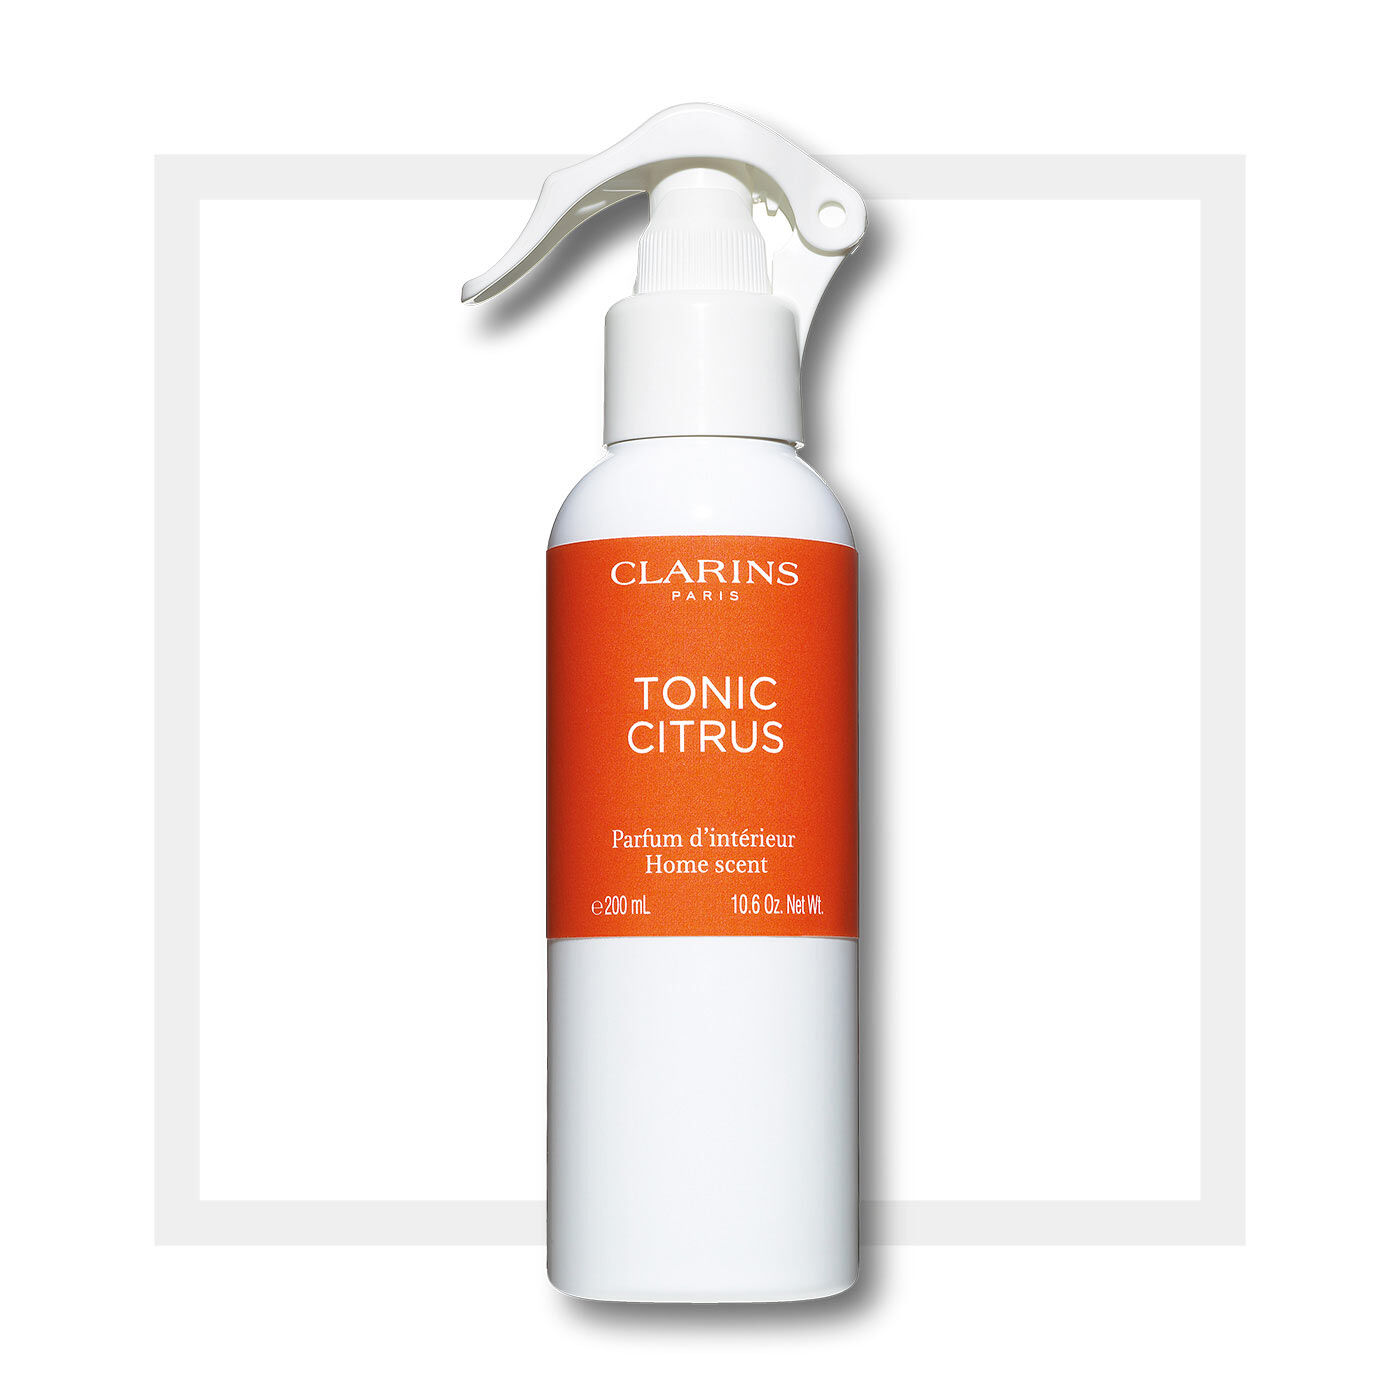 Tonic Citrus Raumduft